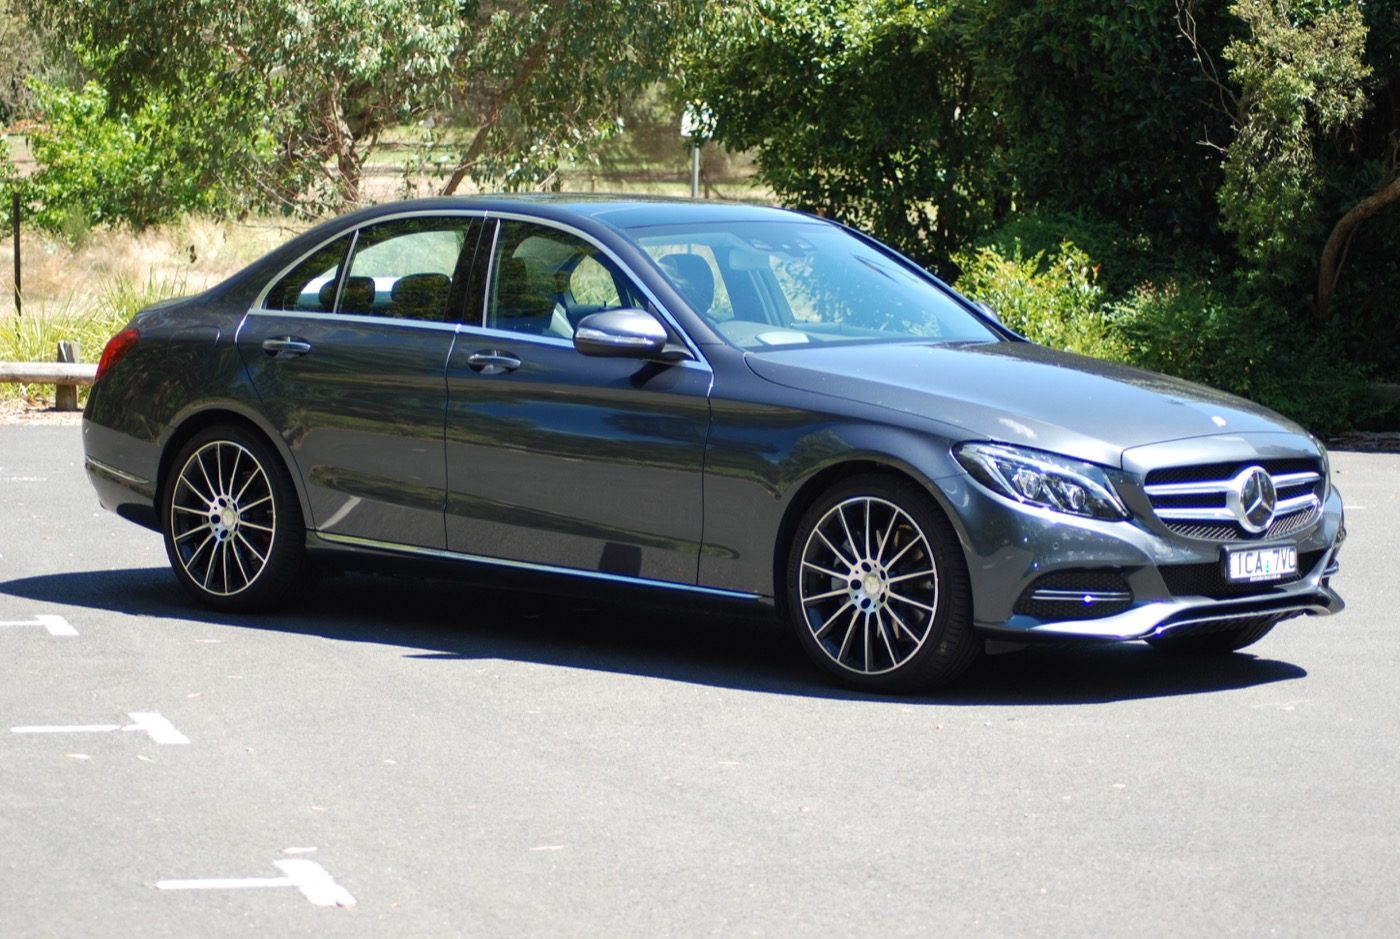 Review mercedes benz c300 bluetec hybrid review for Average insurance cost for mercedes benz c300